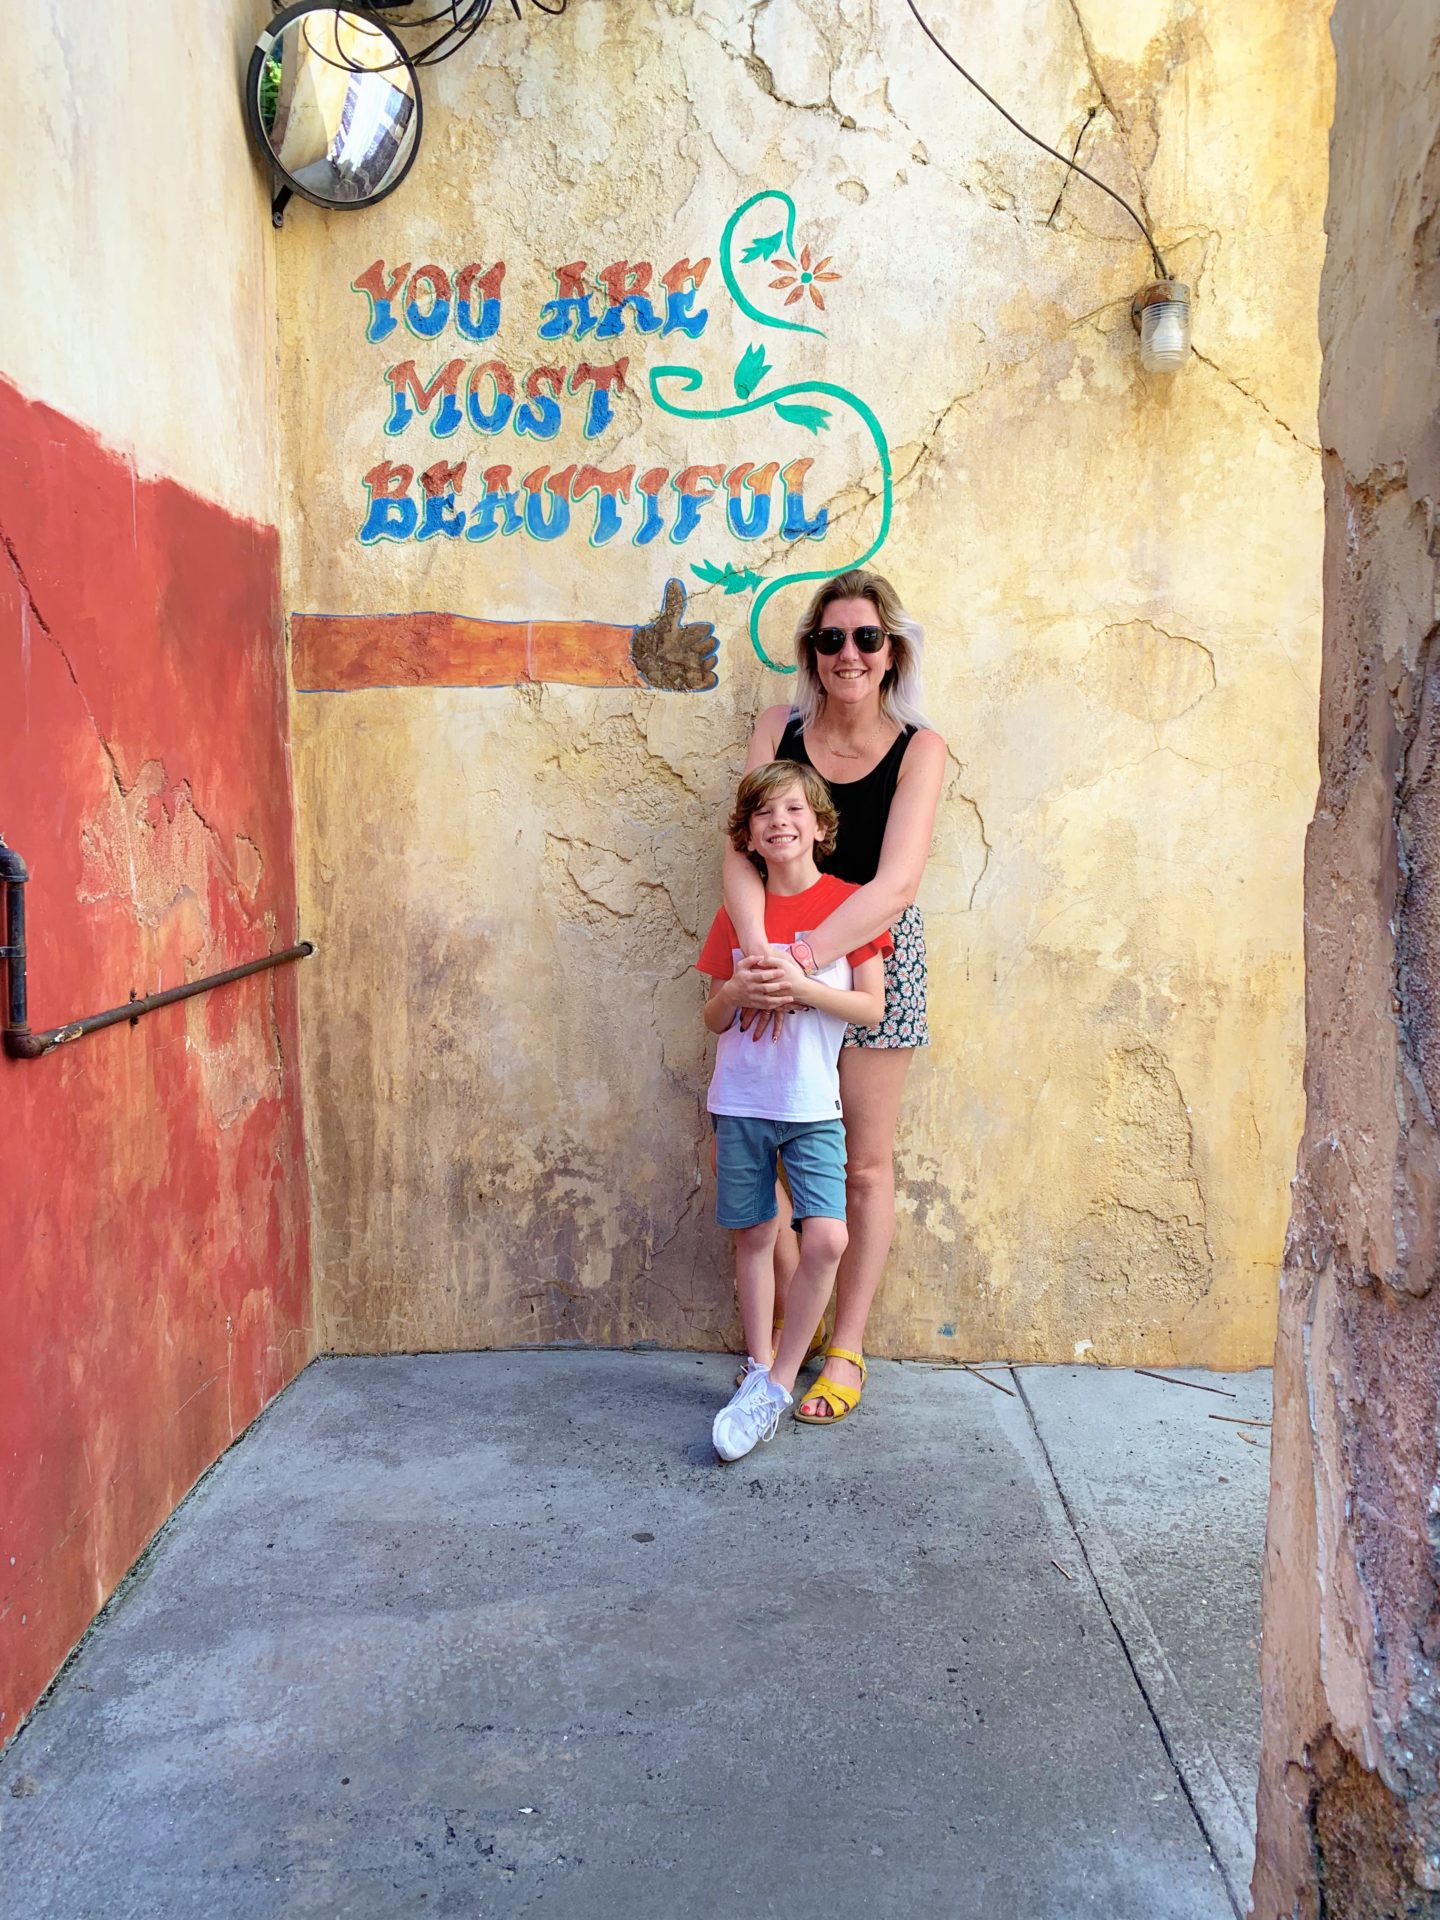 Instagram Walls of Walt Disney World